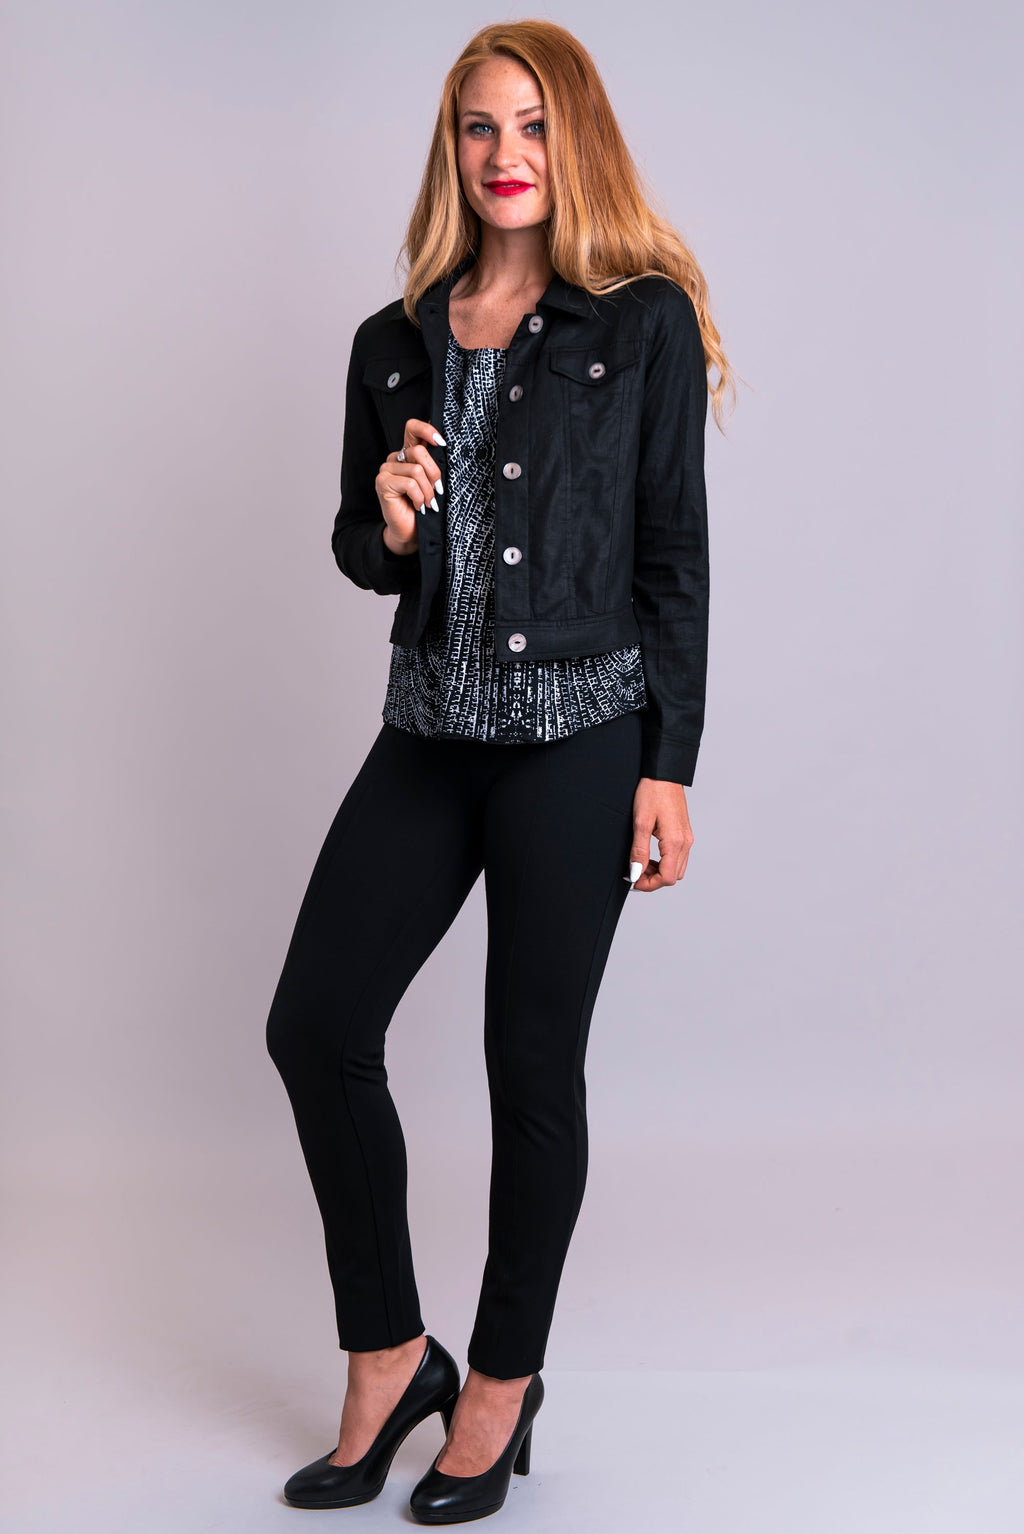 Jones Jacket, Black, Linen Viscose - Blue Sky Clothing Co